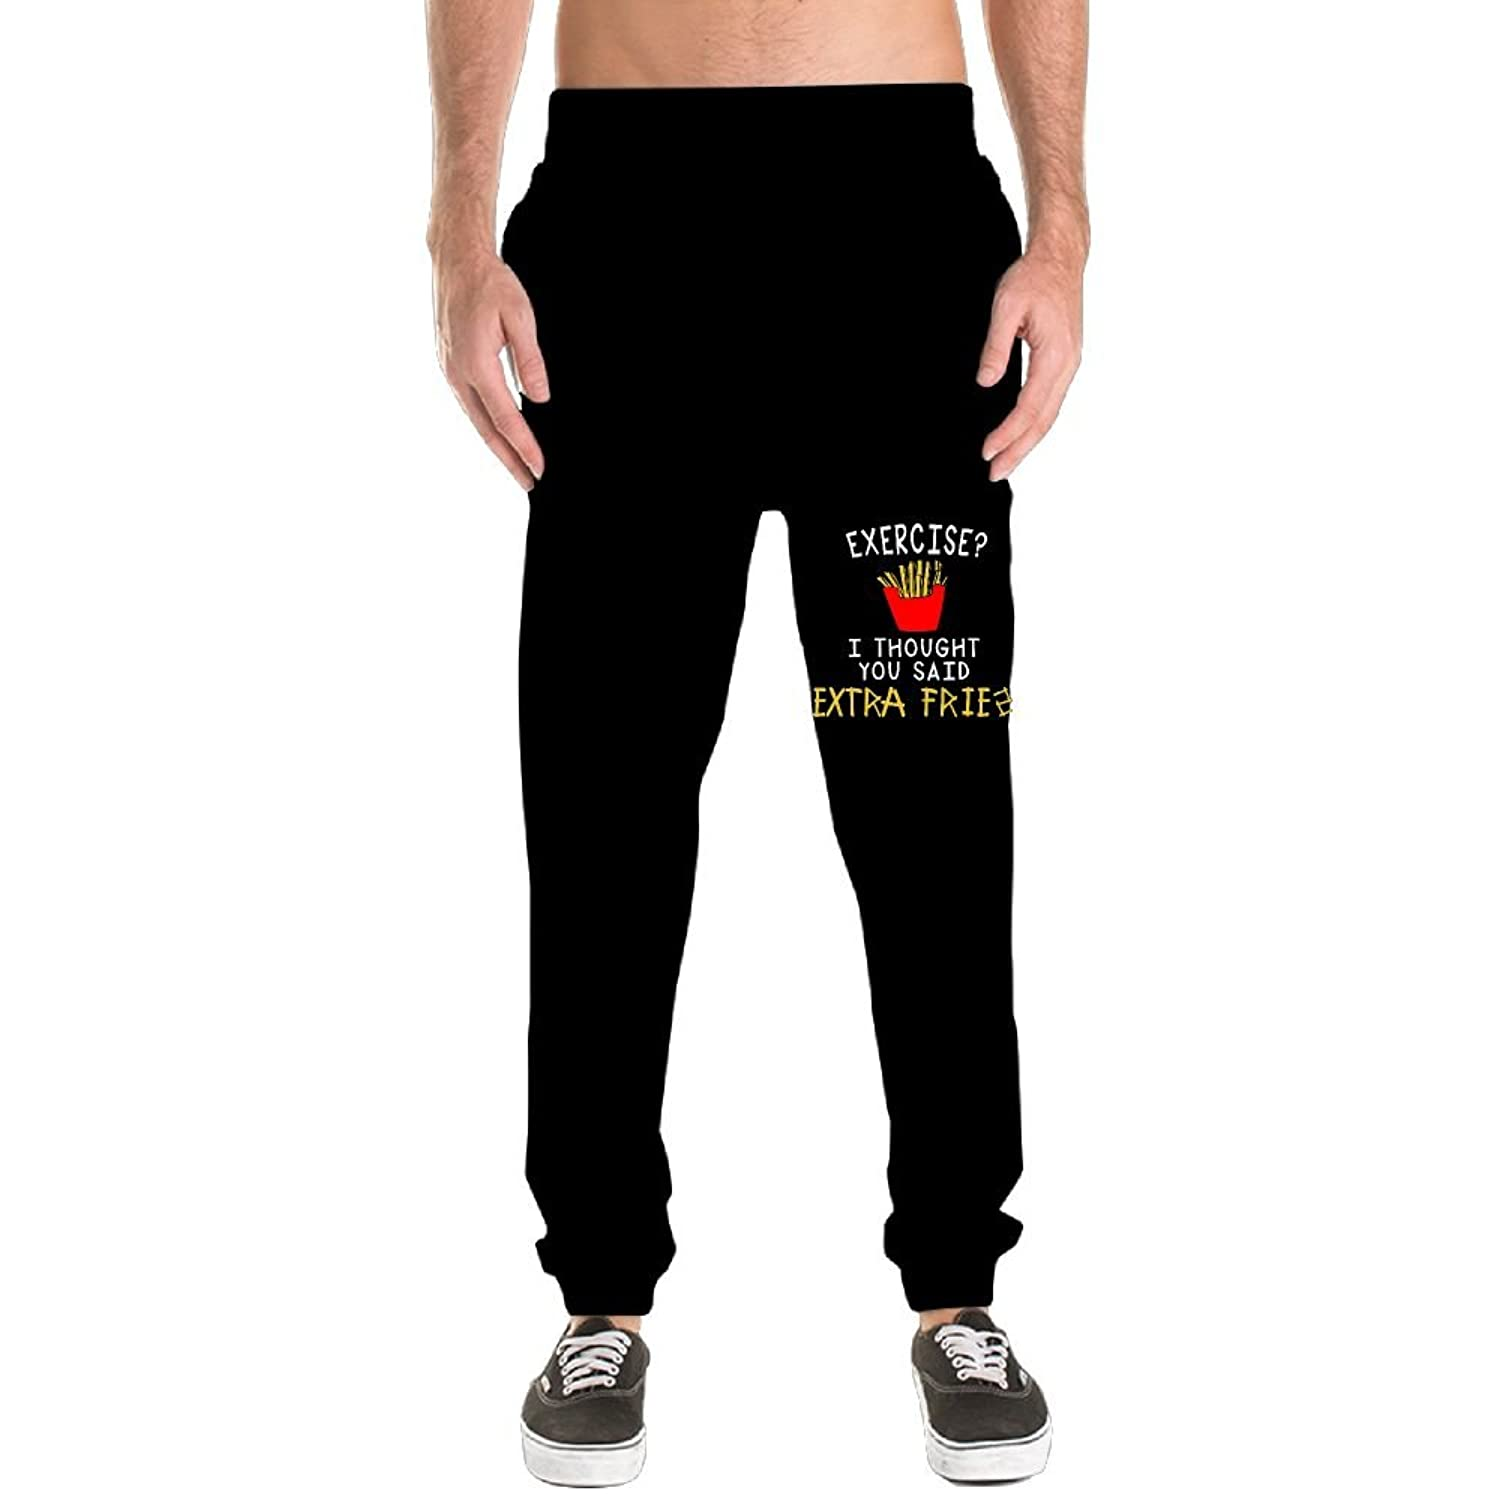 Top Donyoung Exercise I Thought You Said Extra Fries Men Drawstring Athletic Leisure Yoga Pants Sweatpants supplier